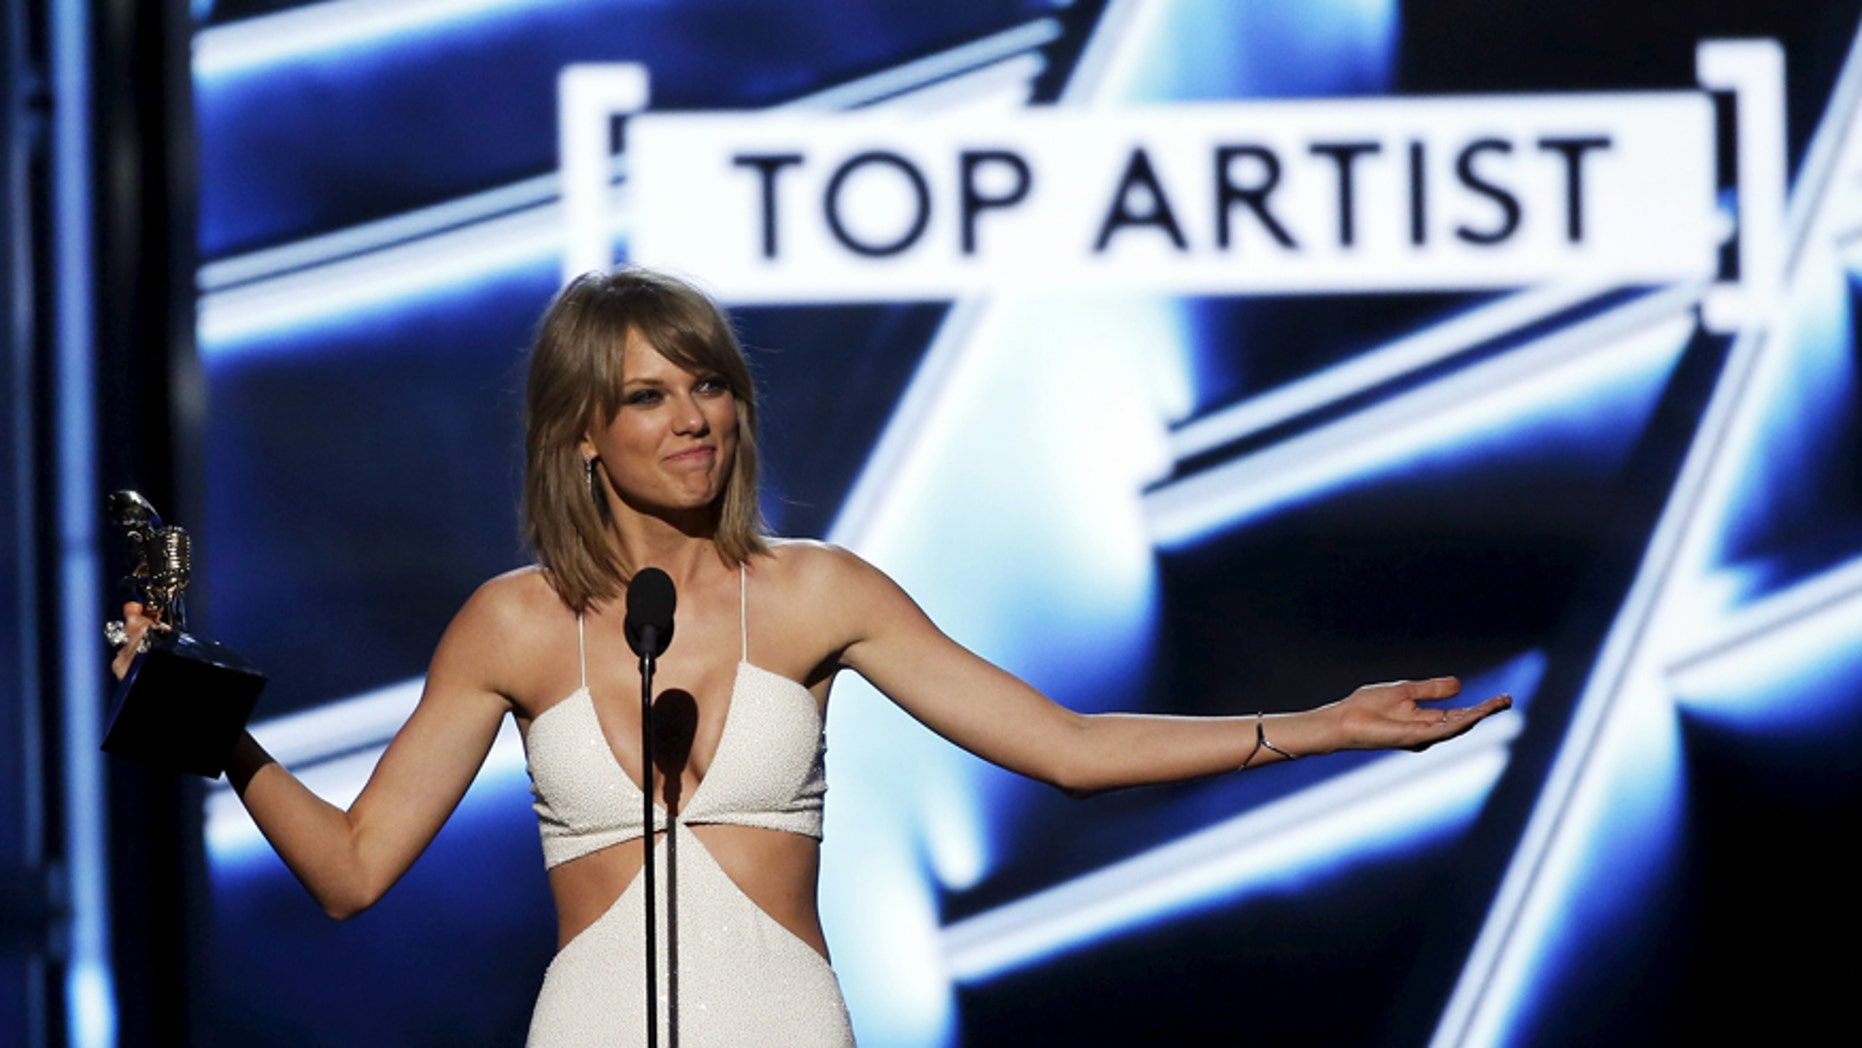 File photo - Taylor Swift accepts the award for Top Artist during the 2015 Billboard Music Awards in Las Vegas, Nevada May 17, 2015.